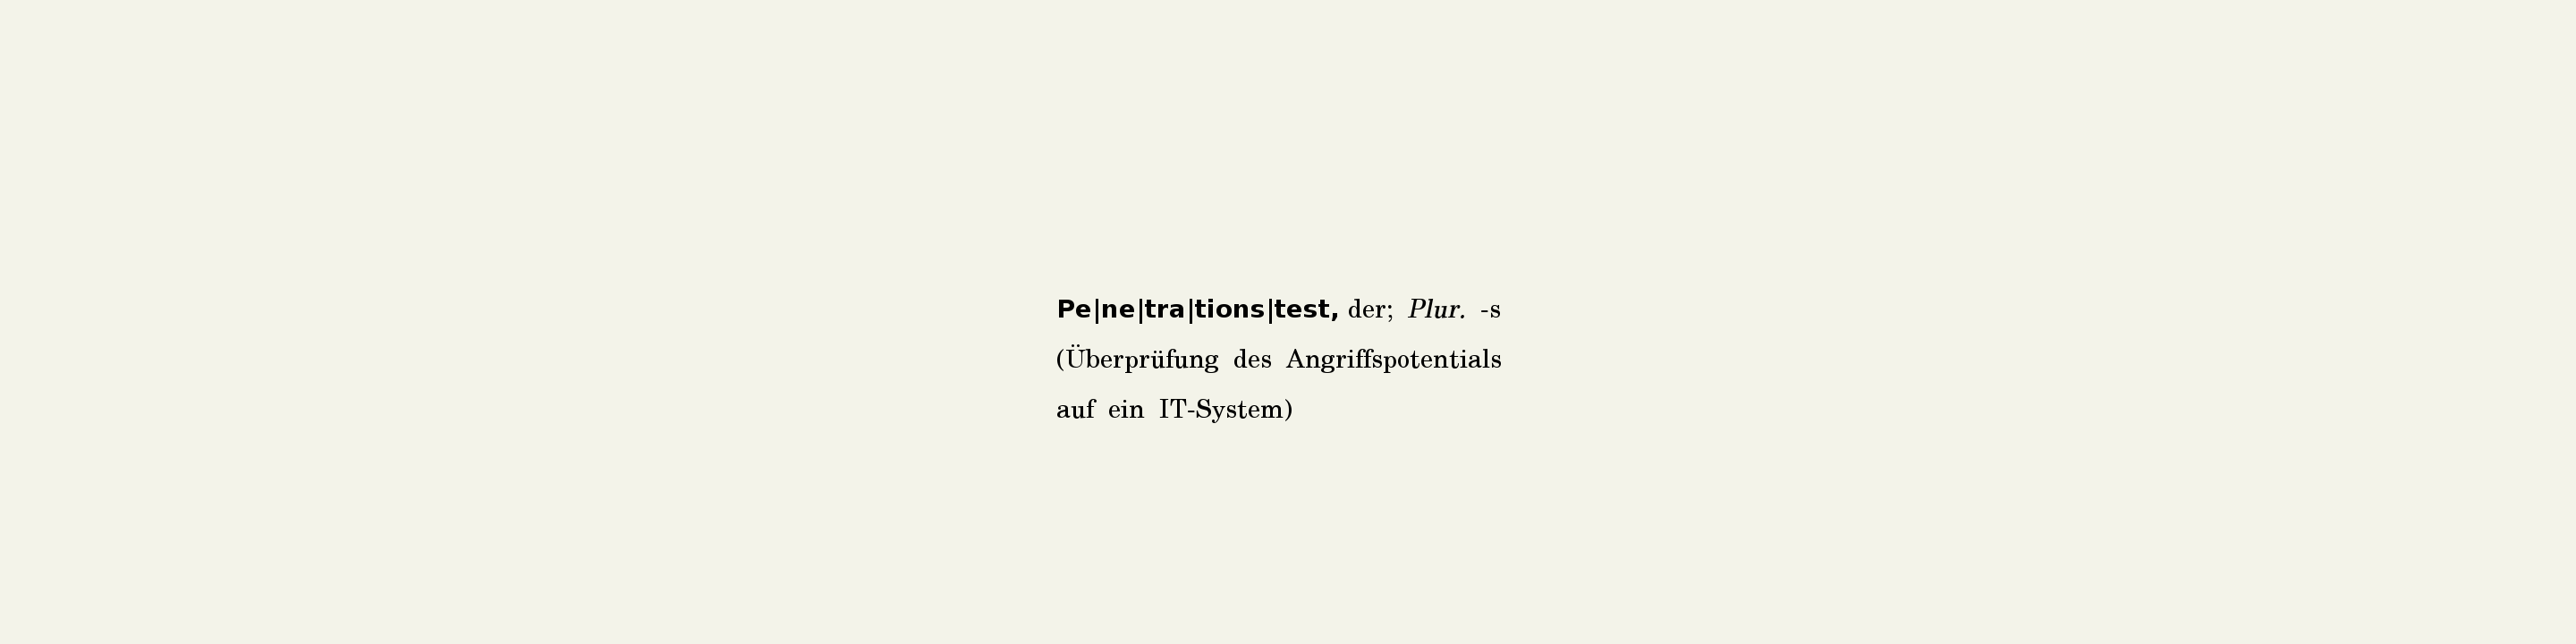 Wörterbuchdefinition Penetrationstest